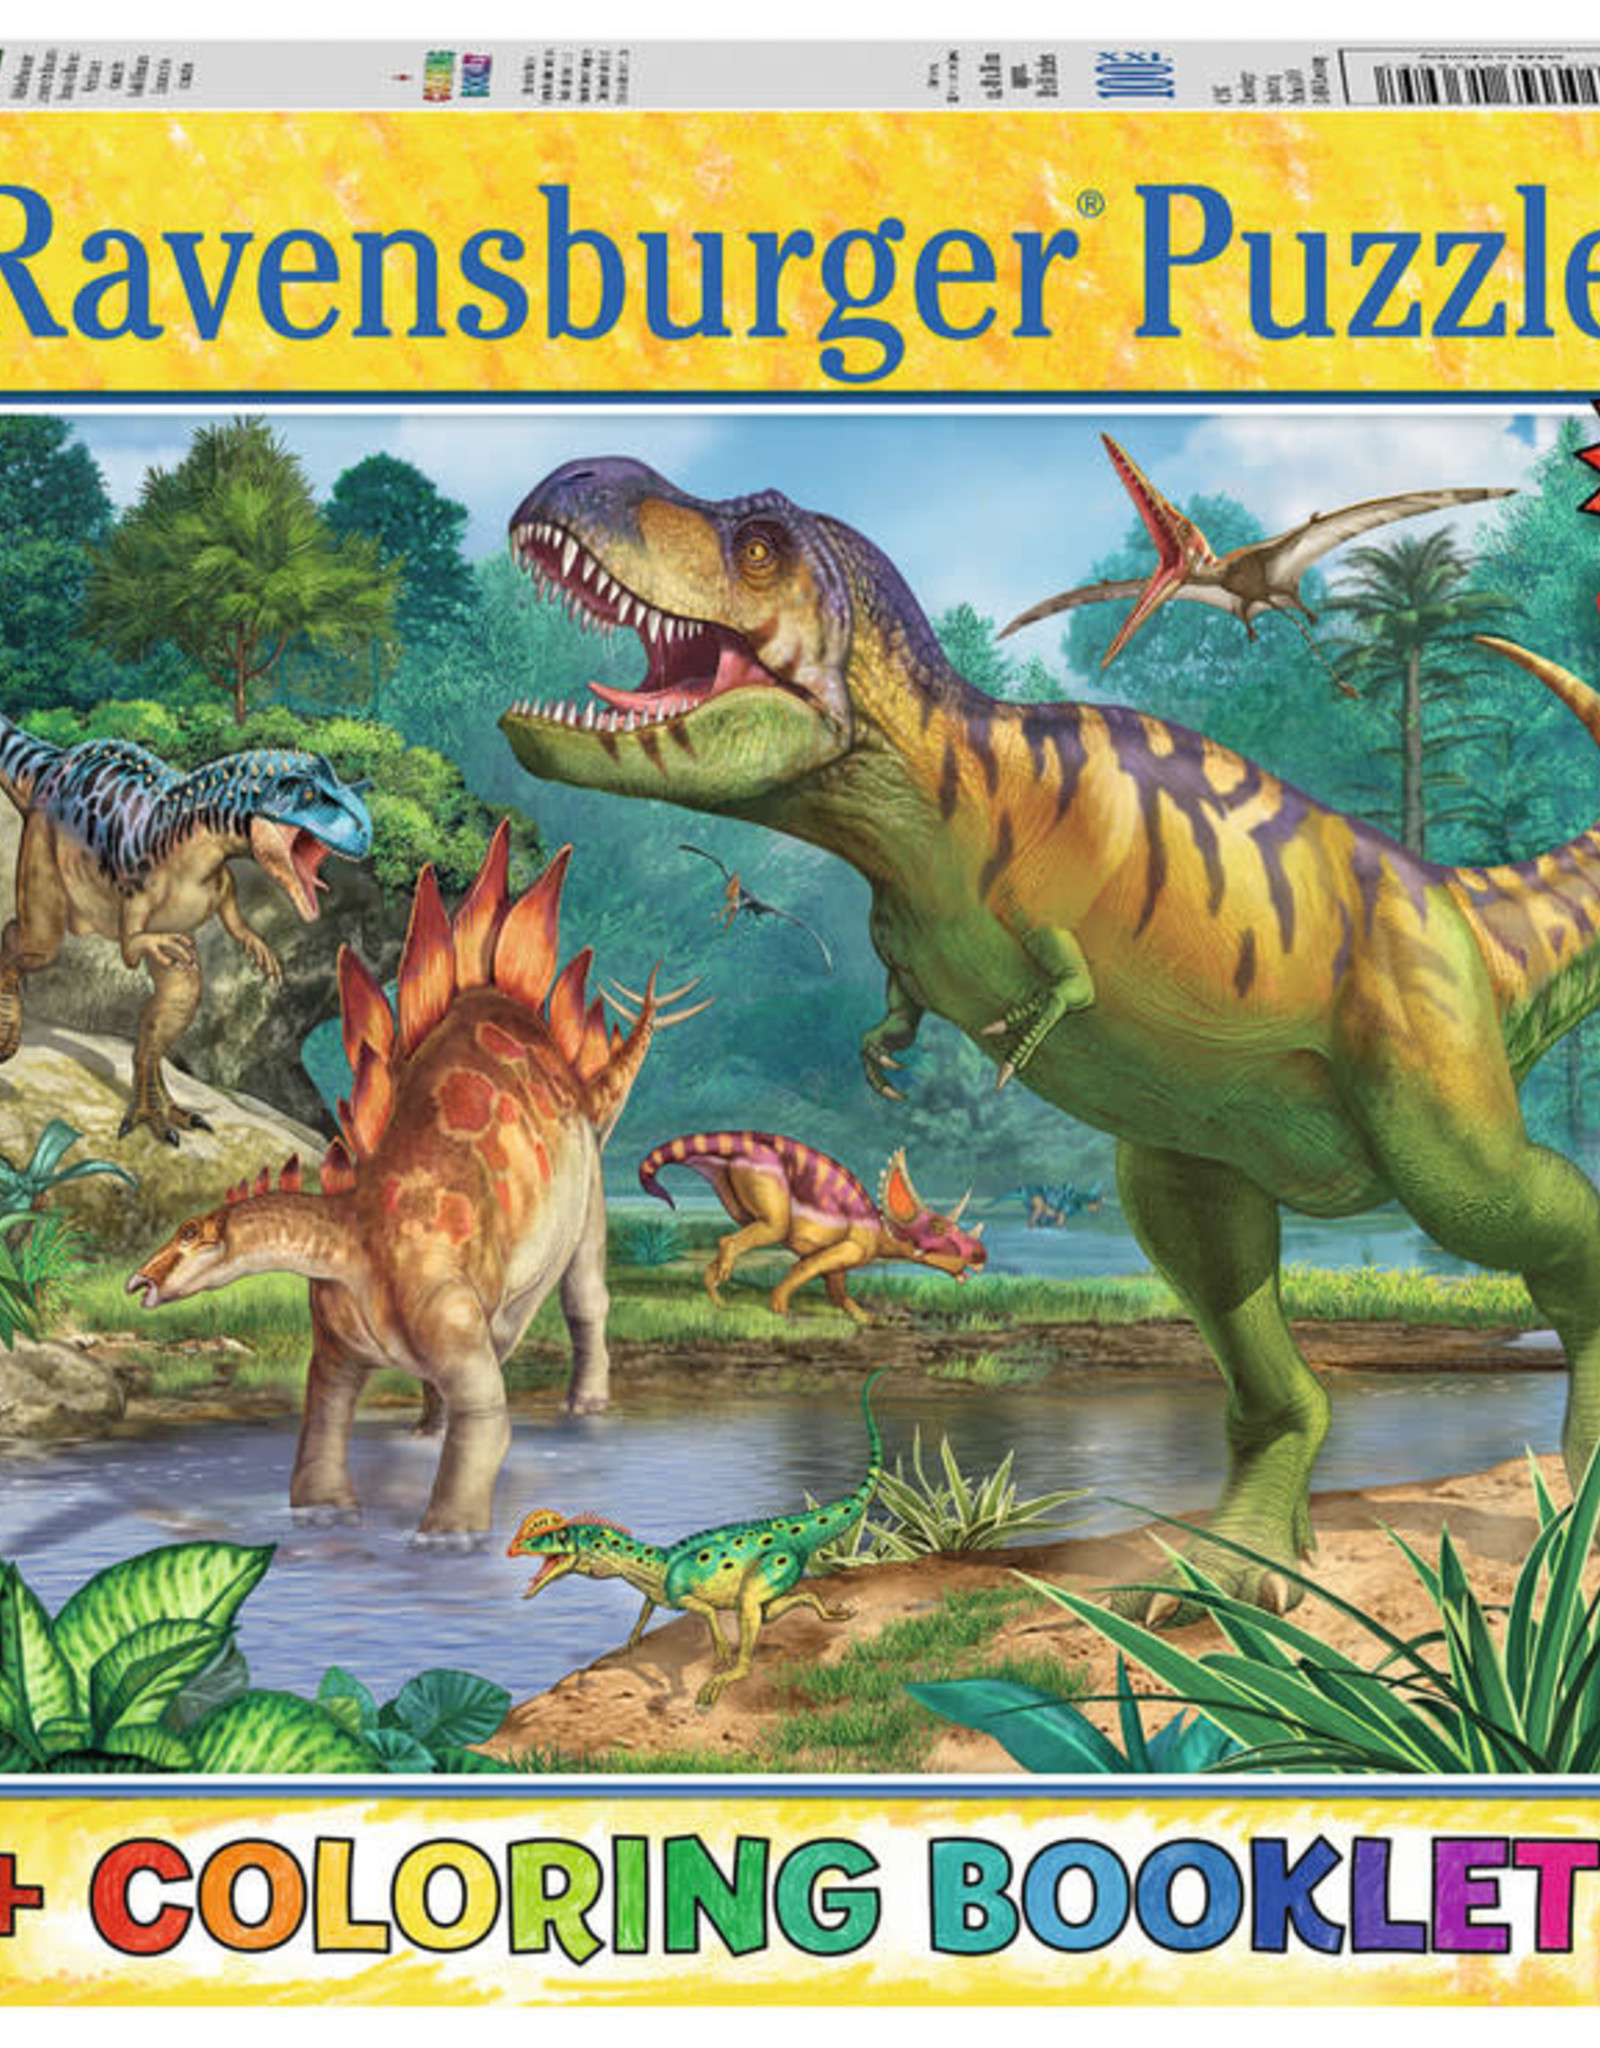 Ravensburger 100pc+coloring book Dinosaurs